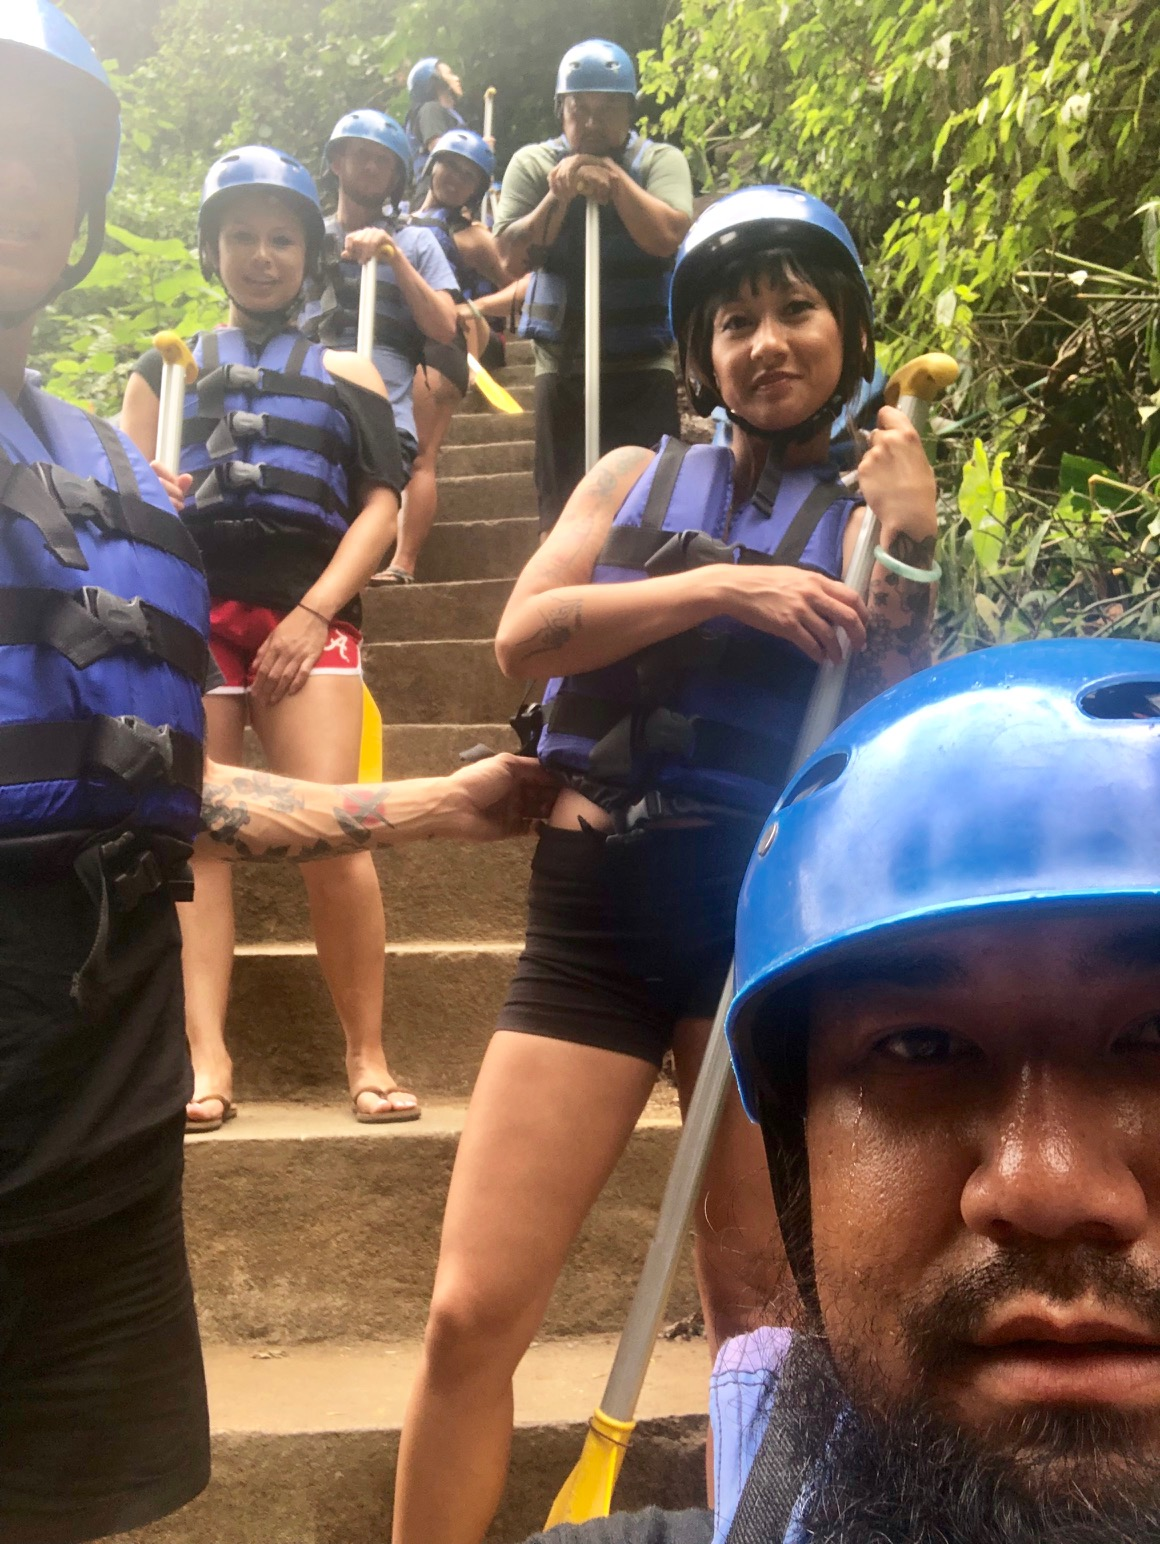 The only photos we have from the rafting. We hiked down these stairs to the river, and took a group photo at the bottom. I was terrified btw, but when we got on it I got super into it! It was SOOOOO MUCH FUN!!